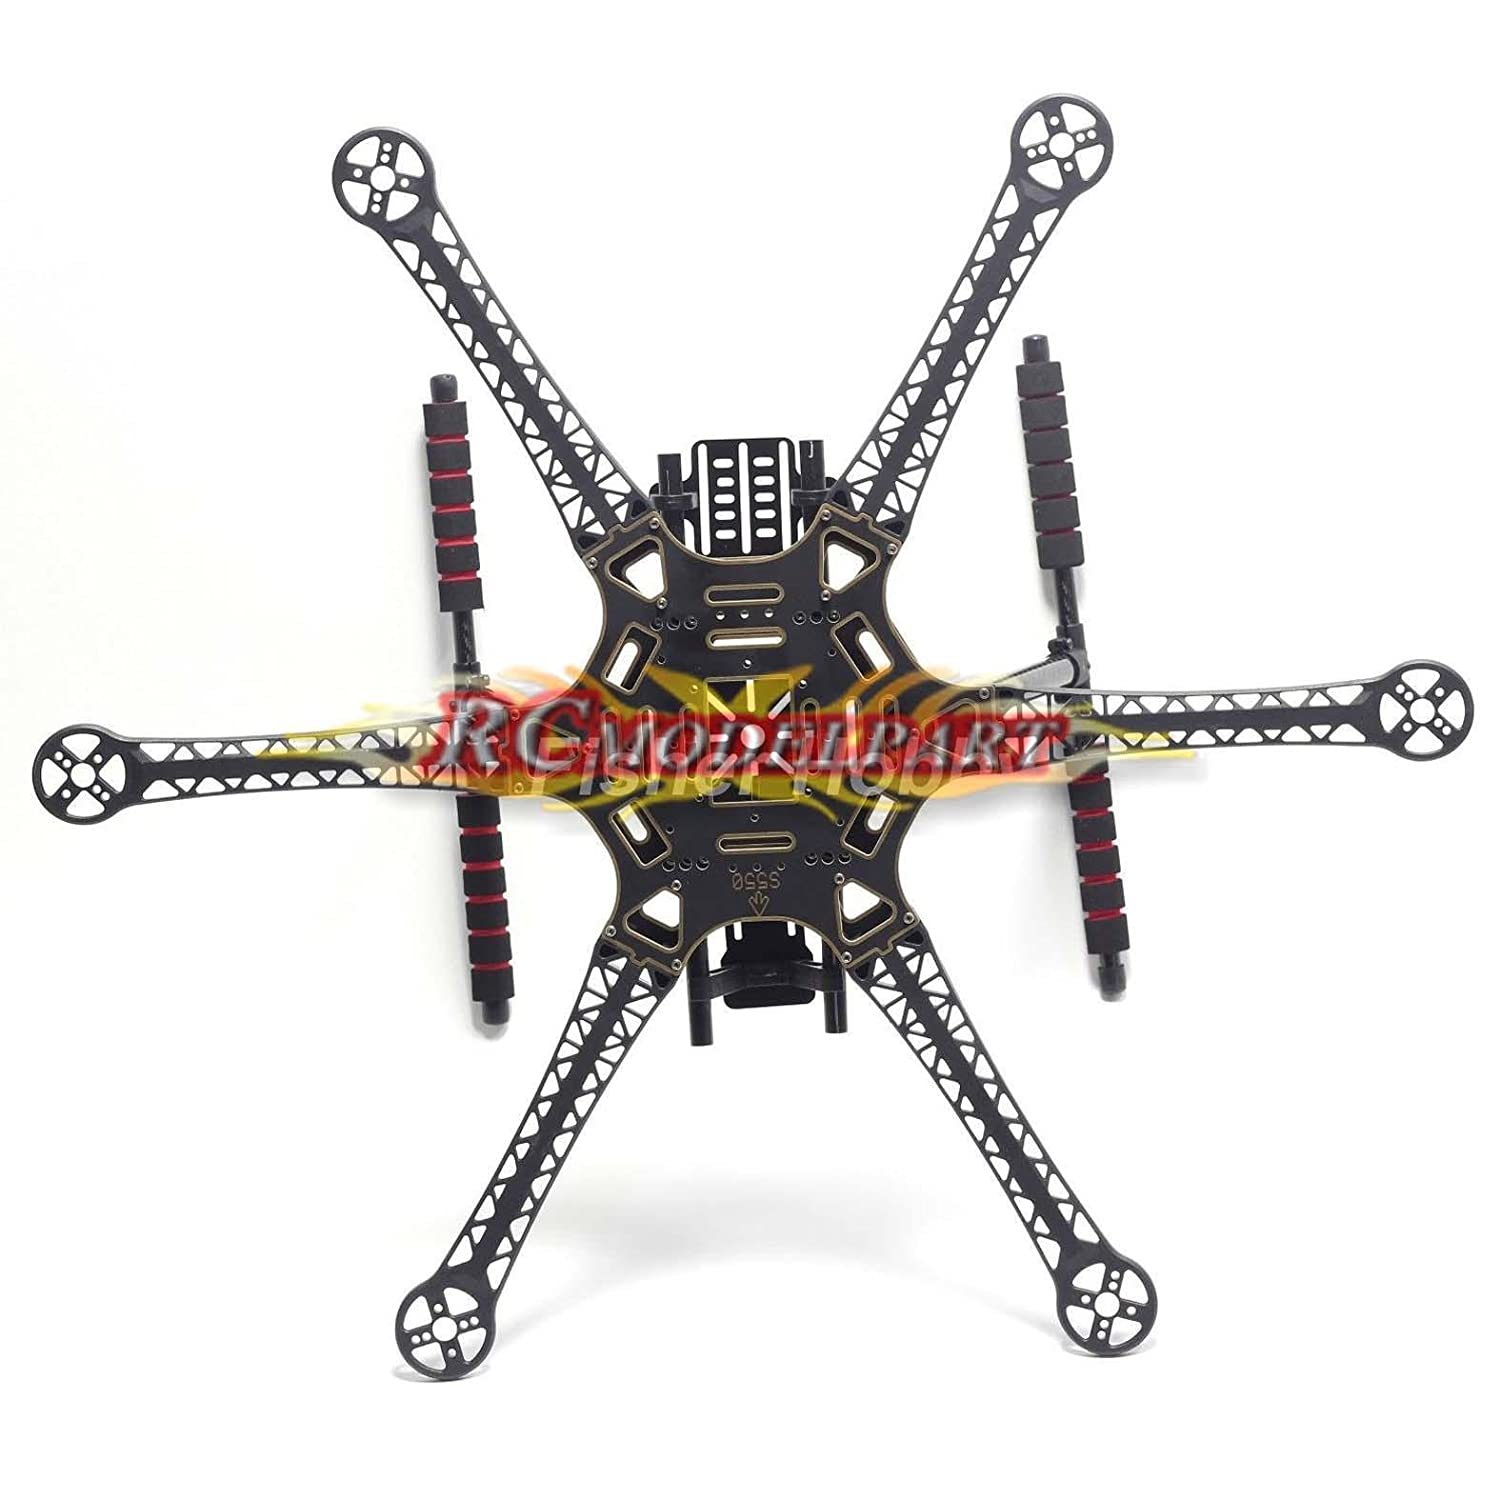 Amazon.com: Hobbypower S550 F550 Upgrade Hexacopter Fuselage Frame ...